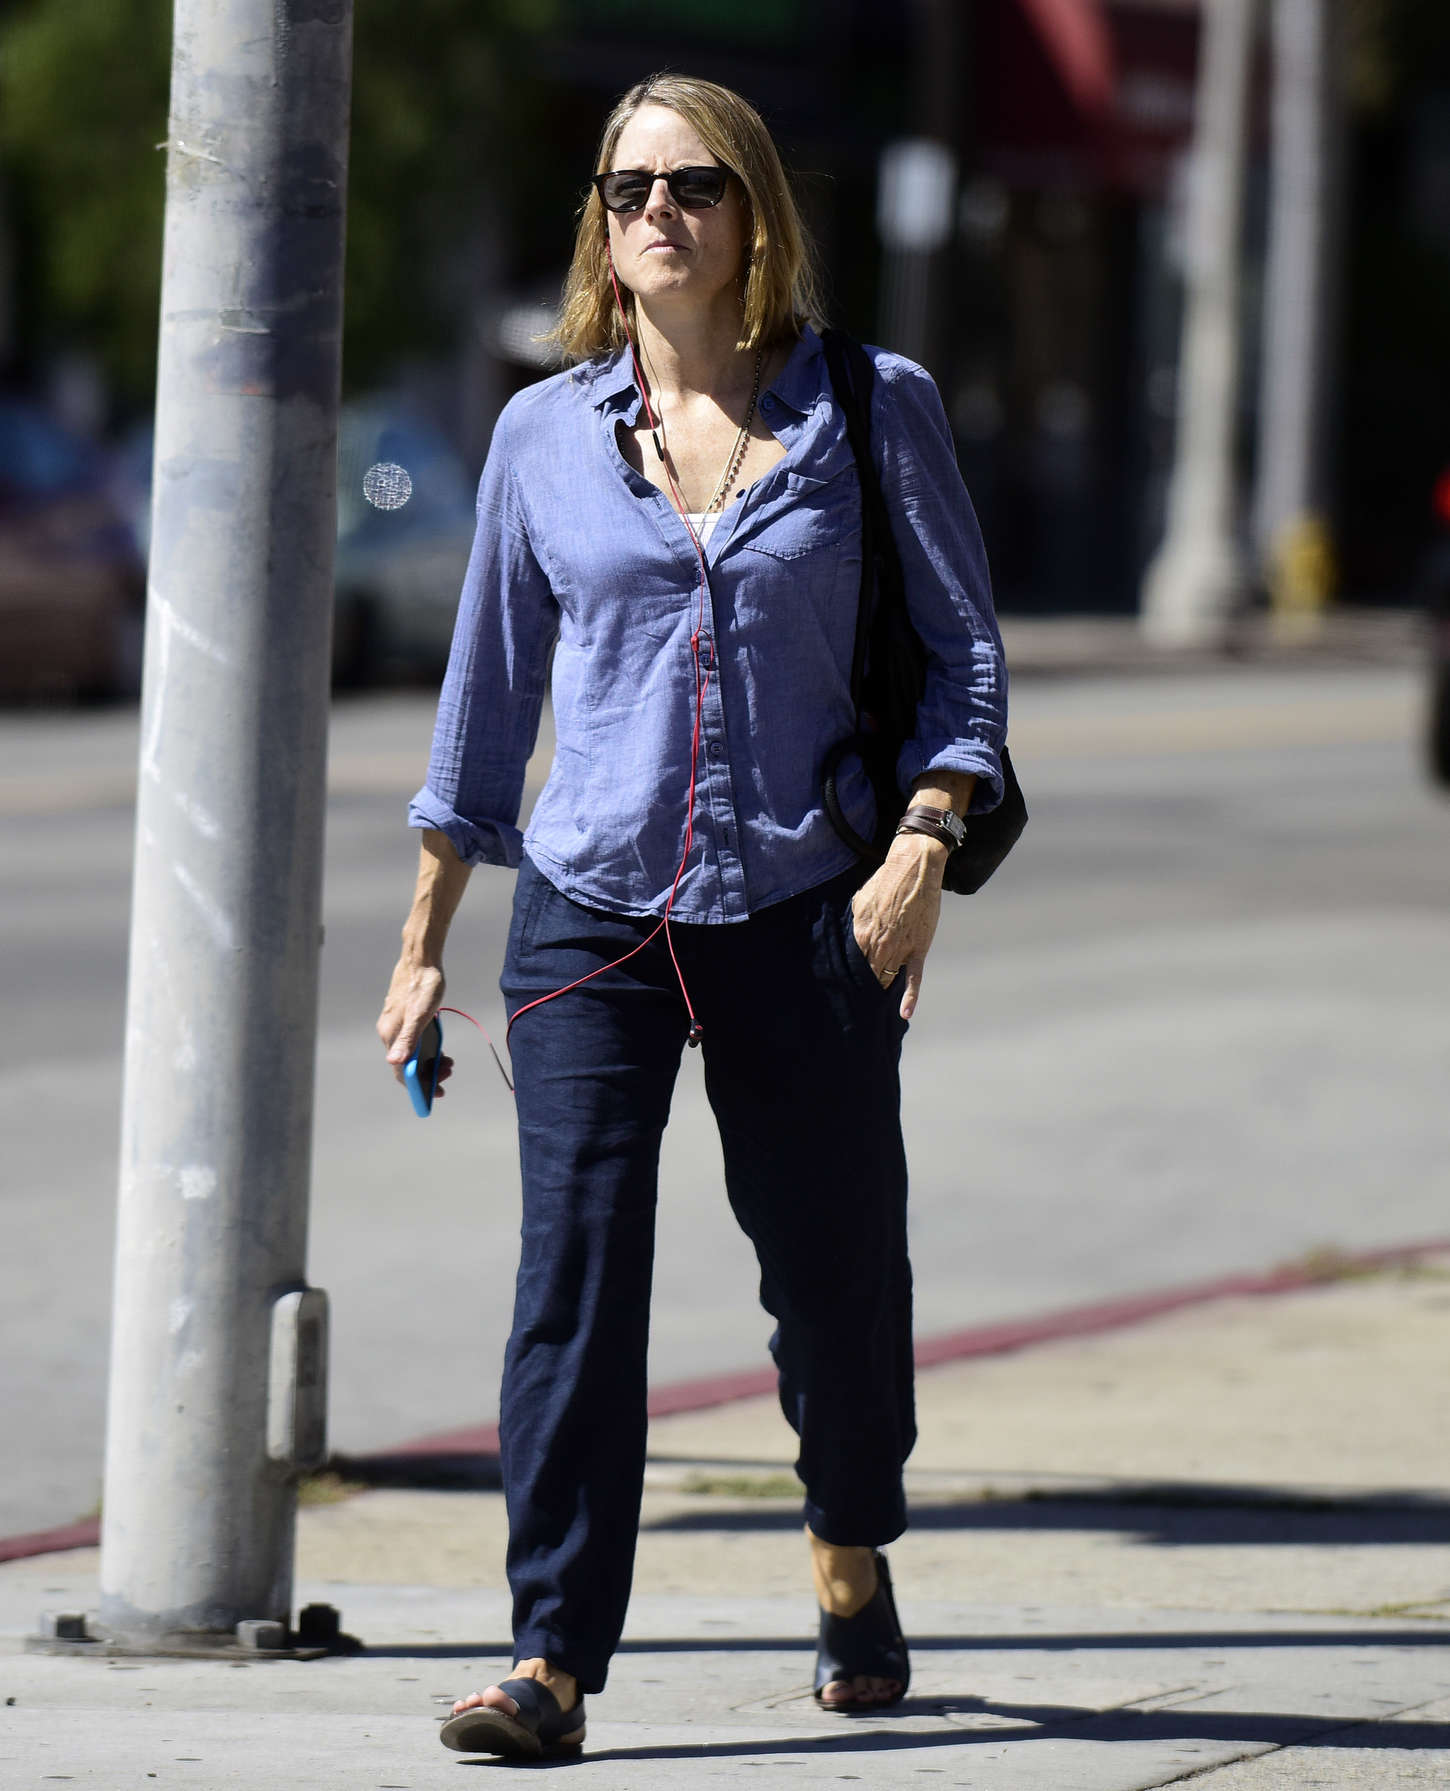 Jodie Foster go out in West Hollywood